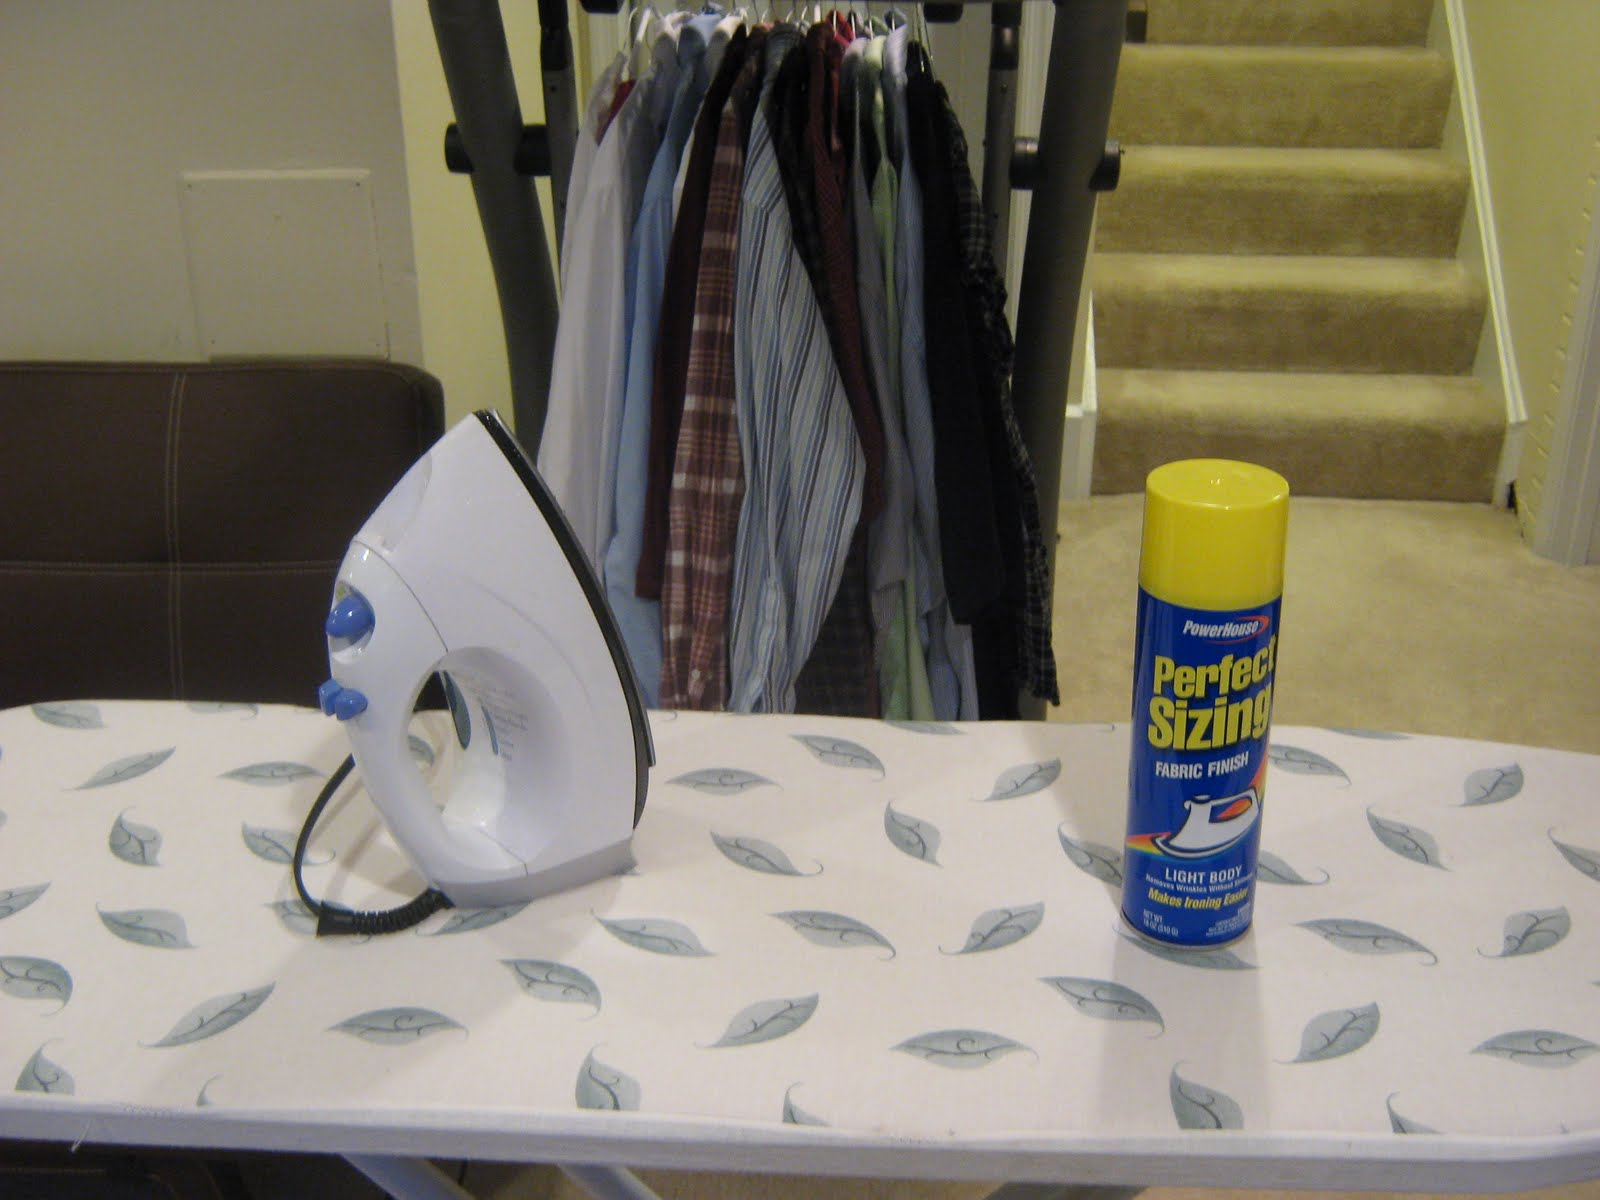 Fake it frugal why pay dry cleaning when i can do it myself for practically free so back to the ironing board i went armed with a can of spray starch and a good soap opera to watch solutioingenieria Image collections